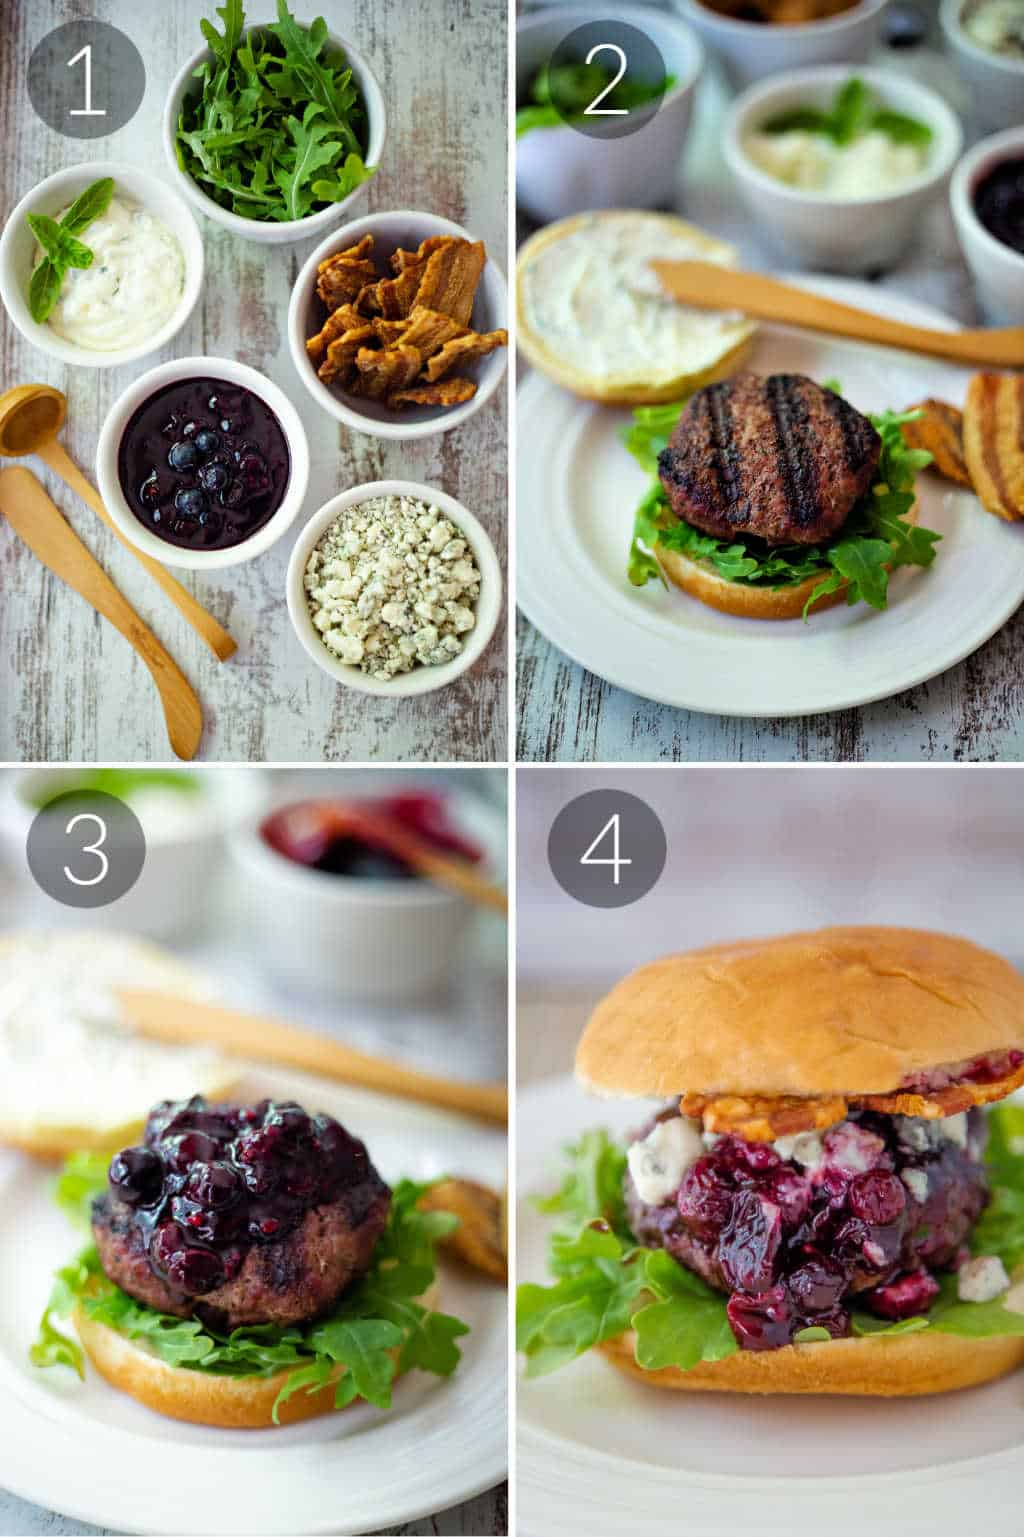 process for assembling a Blueberry Blue Cheese Bacon Burger